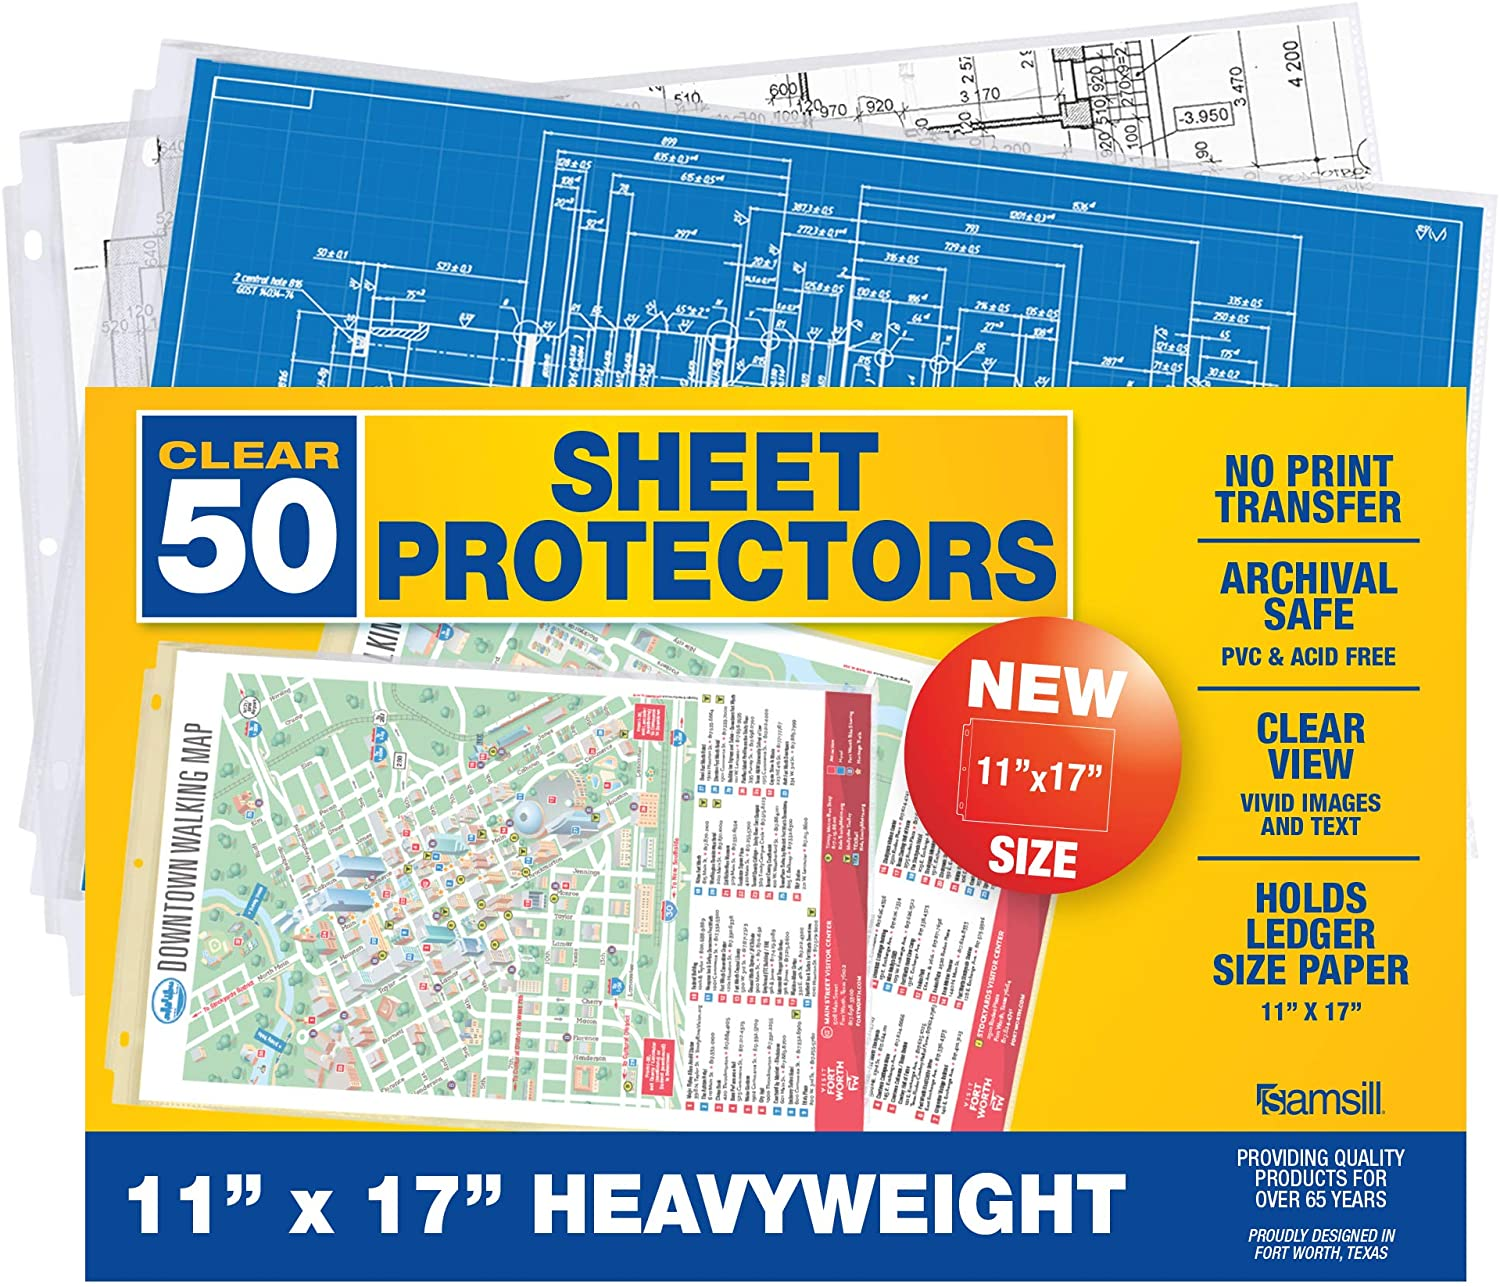 Samsill 50 Pack 11x17 Sheet Protectors, Poster Protector, Ledger Size Sheet Protectors for Document, Side Loading, Heavyweight, and Archival Safe